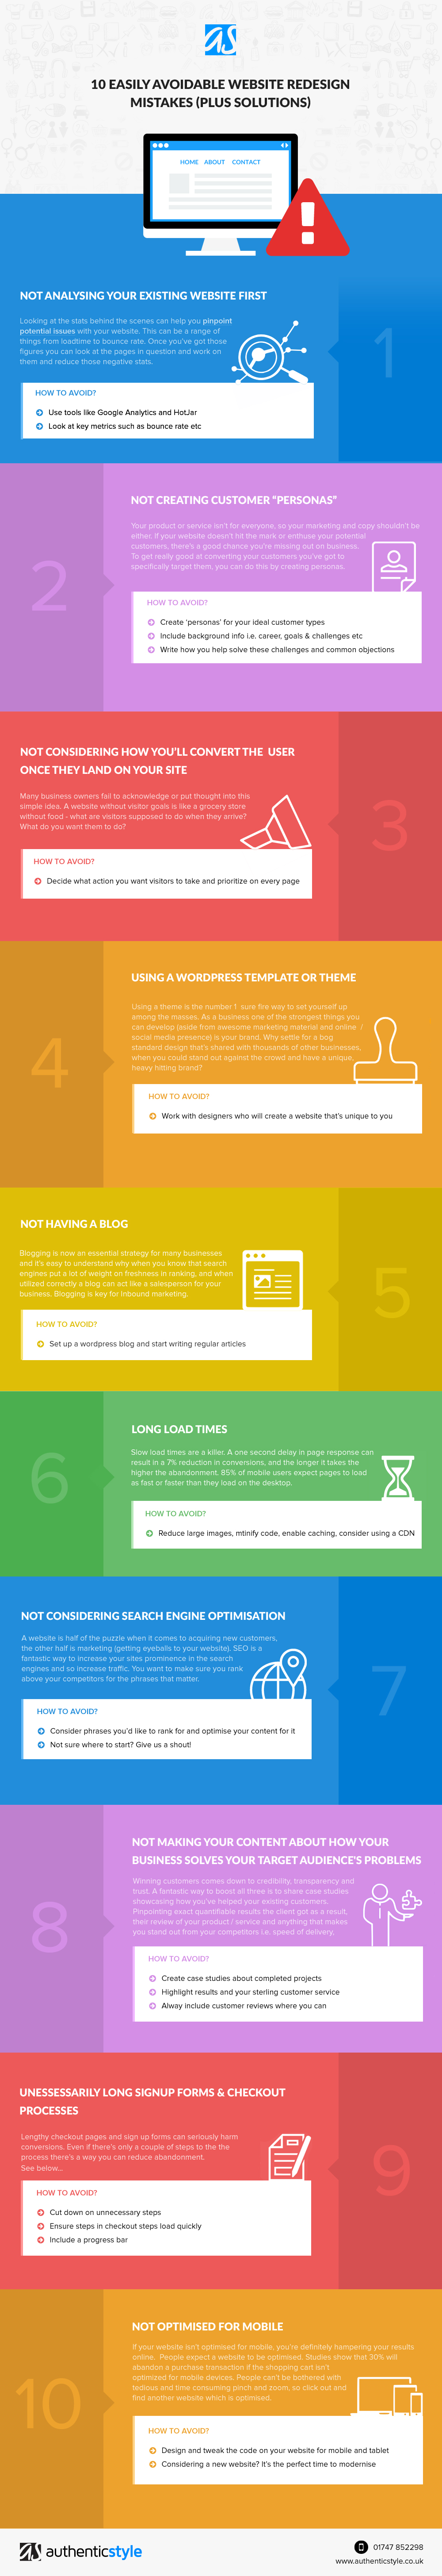 website-redesign-mistakes-infographic